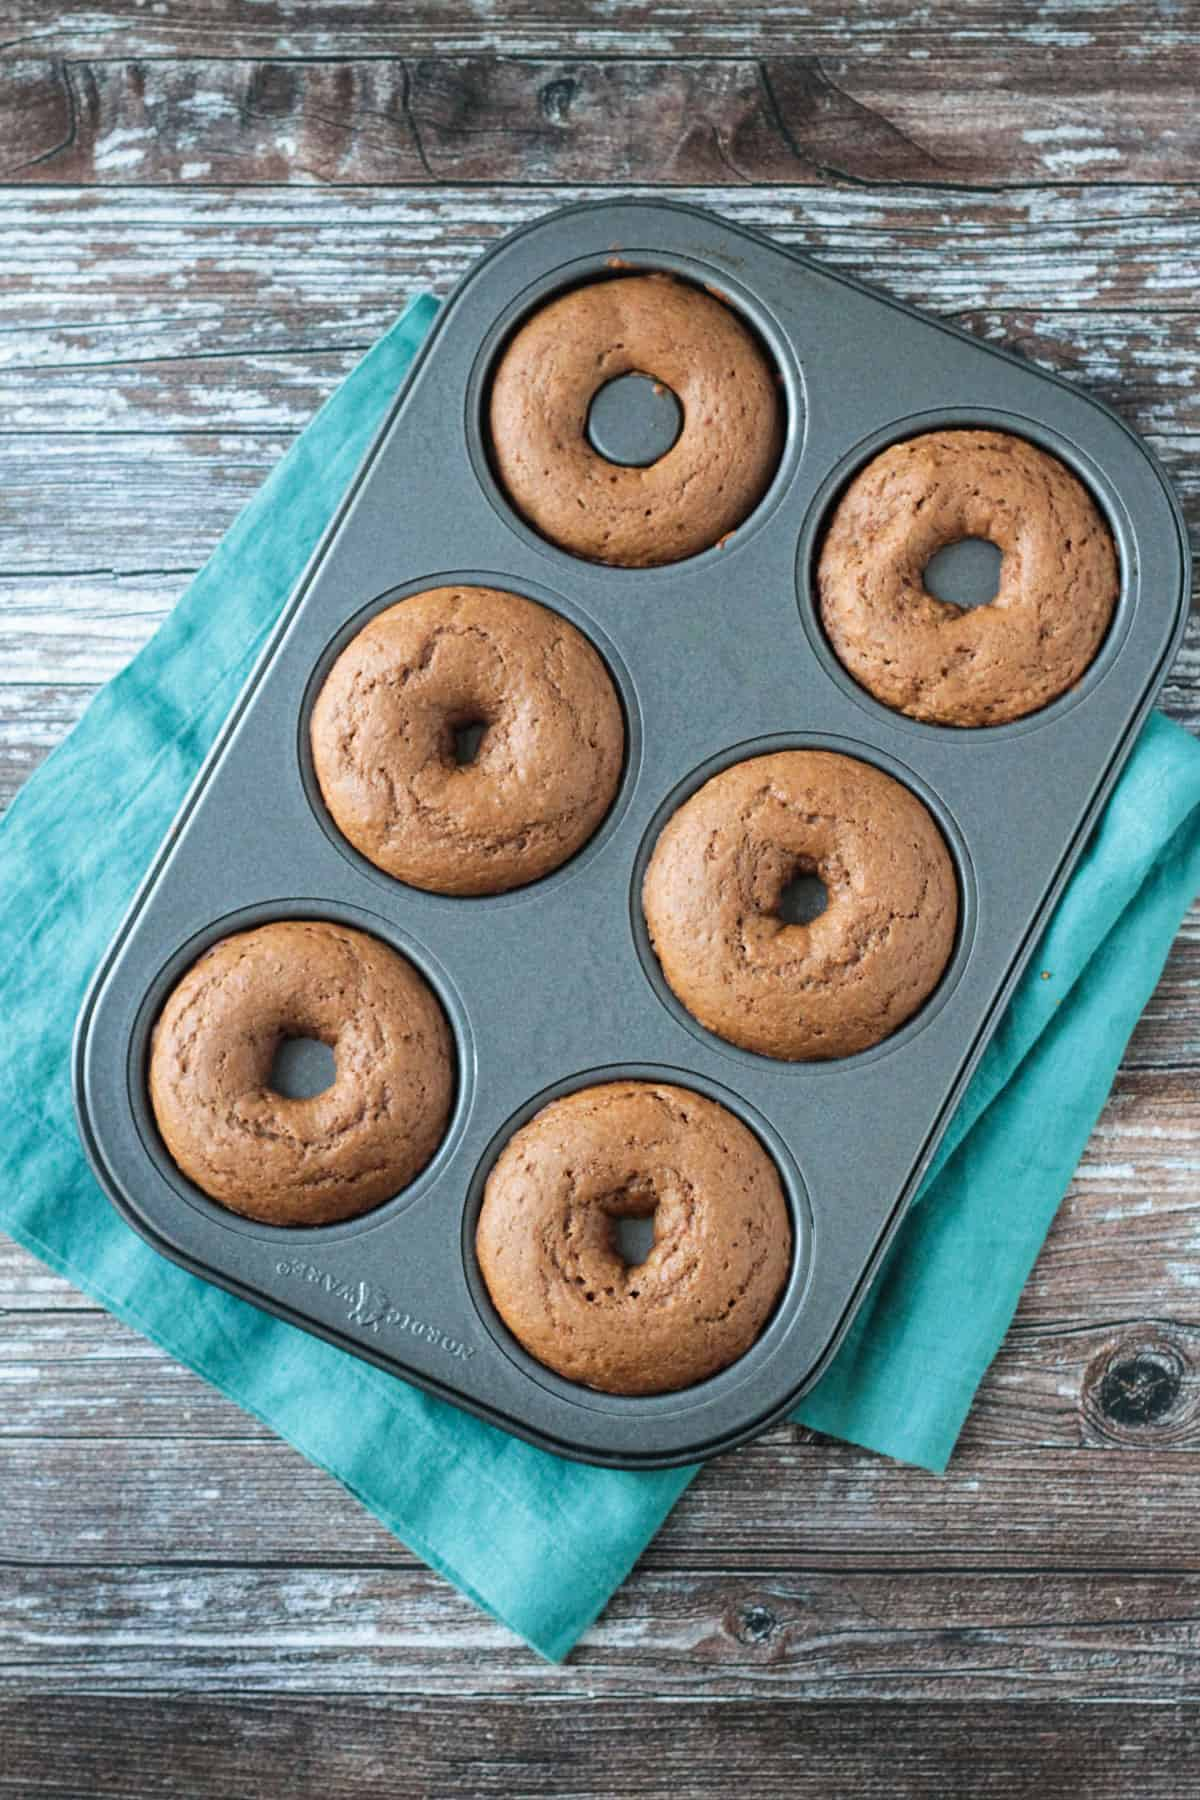 6 baked donuts in a donut pan.